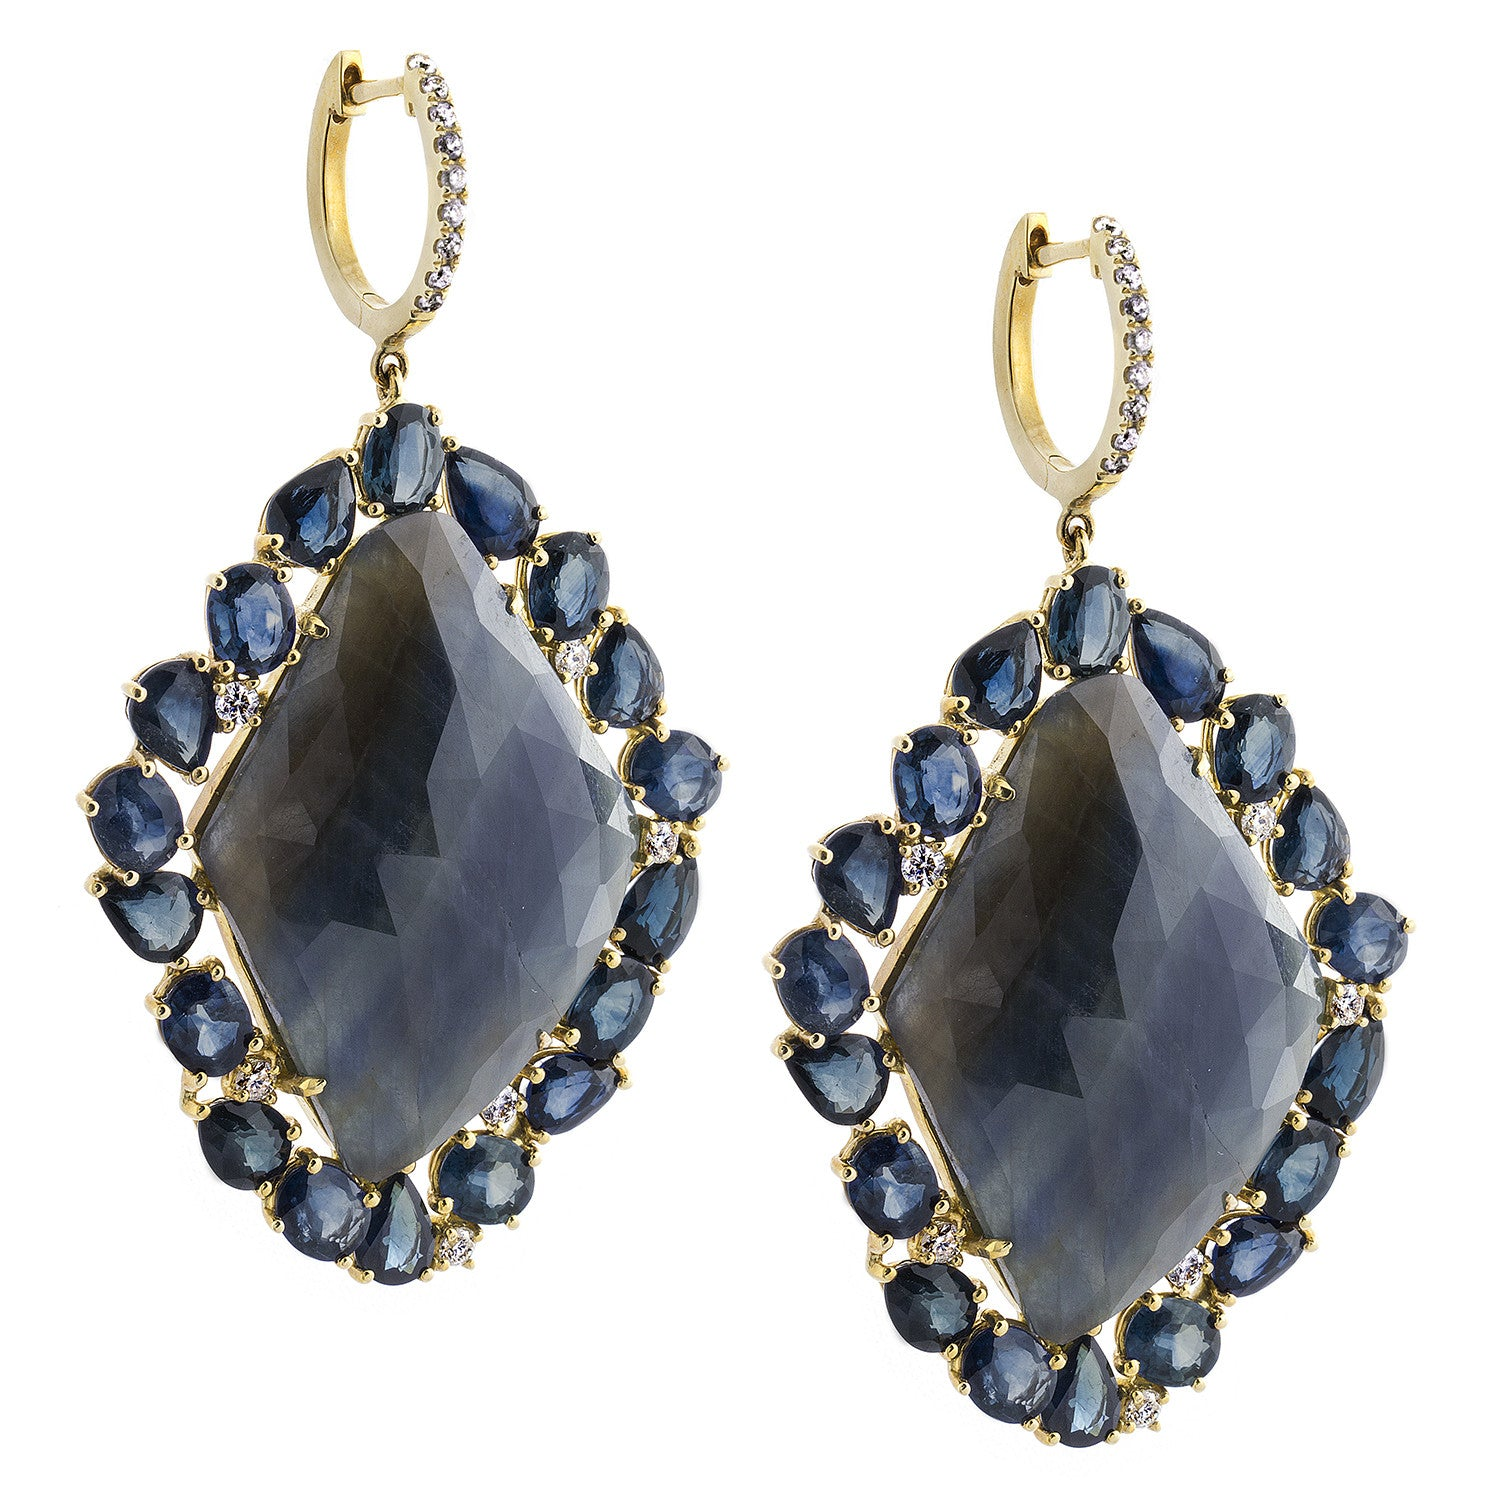 Dramatic Sapphire, Diamond & 18K Yellow Gold Earrings